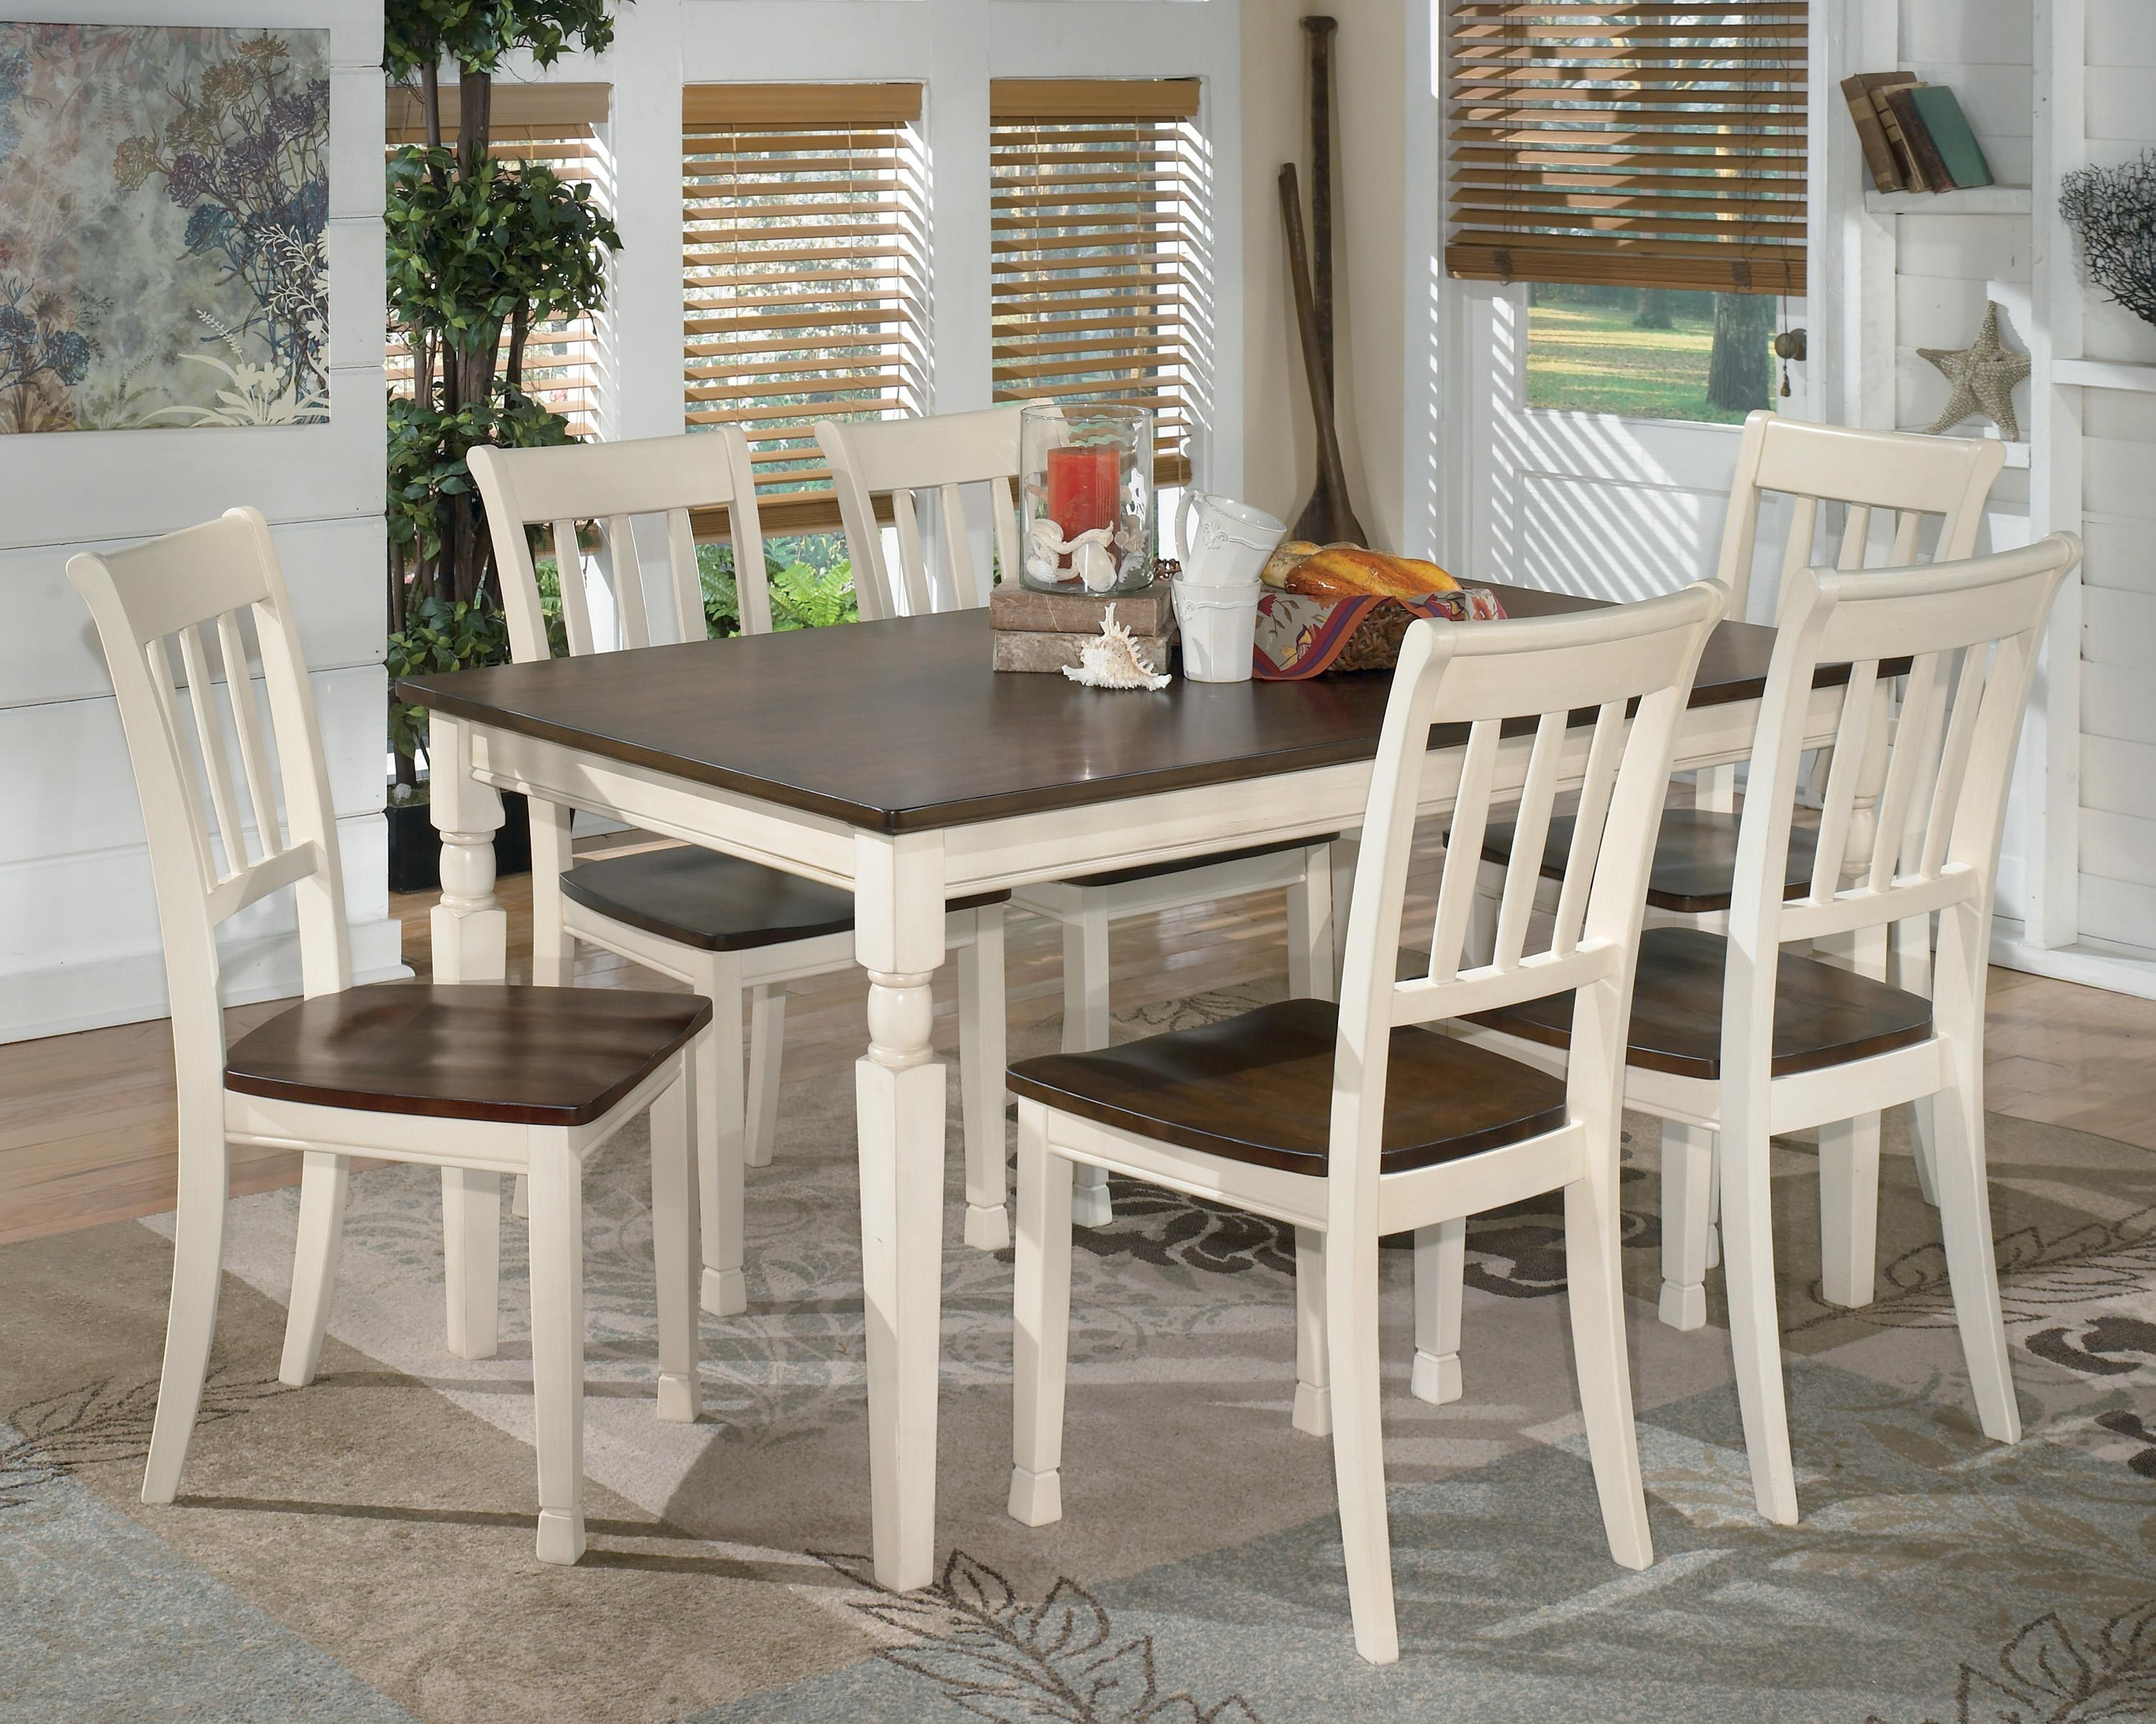 Signature Design by Ashley Whitesburg 7-Piece Rectangular Dining Table Set  sc 1 st  Wayside Furniture & Signature Design by Ashley Whitesburg 7-Piece Rectangular Dining ...